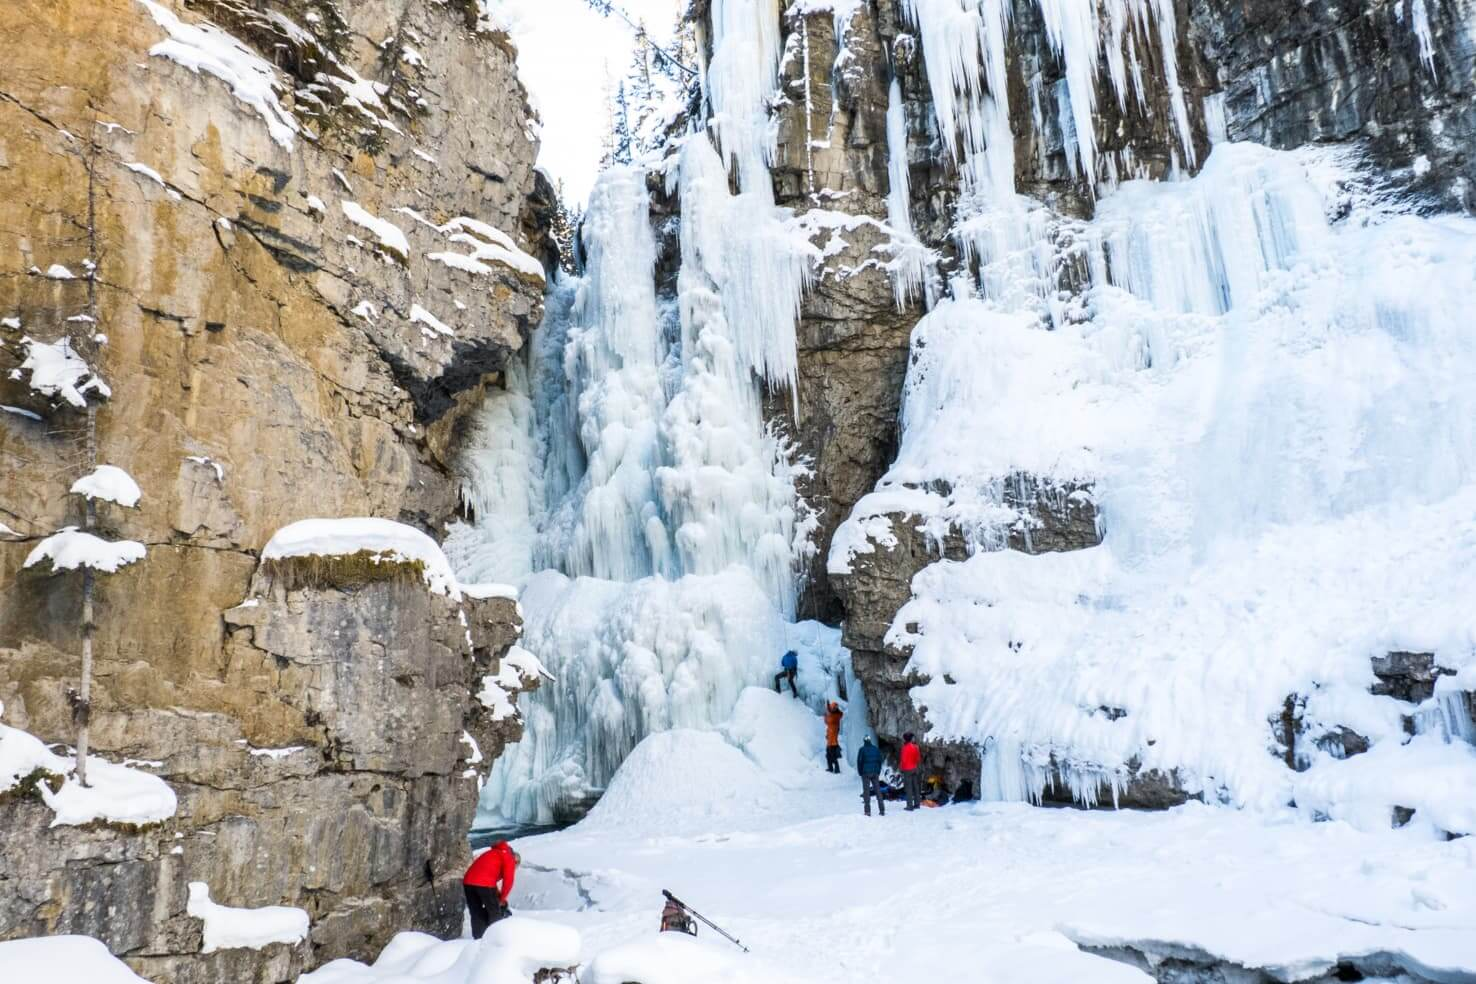 100 best things to do in Banff National Park - Experience ice walk in Johnston Canyon